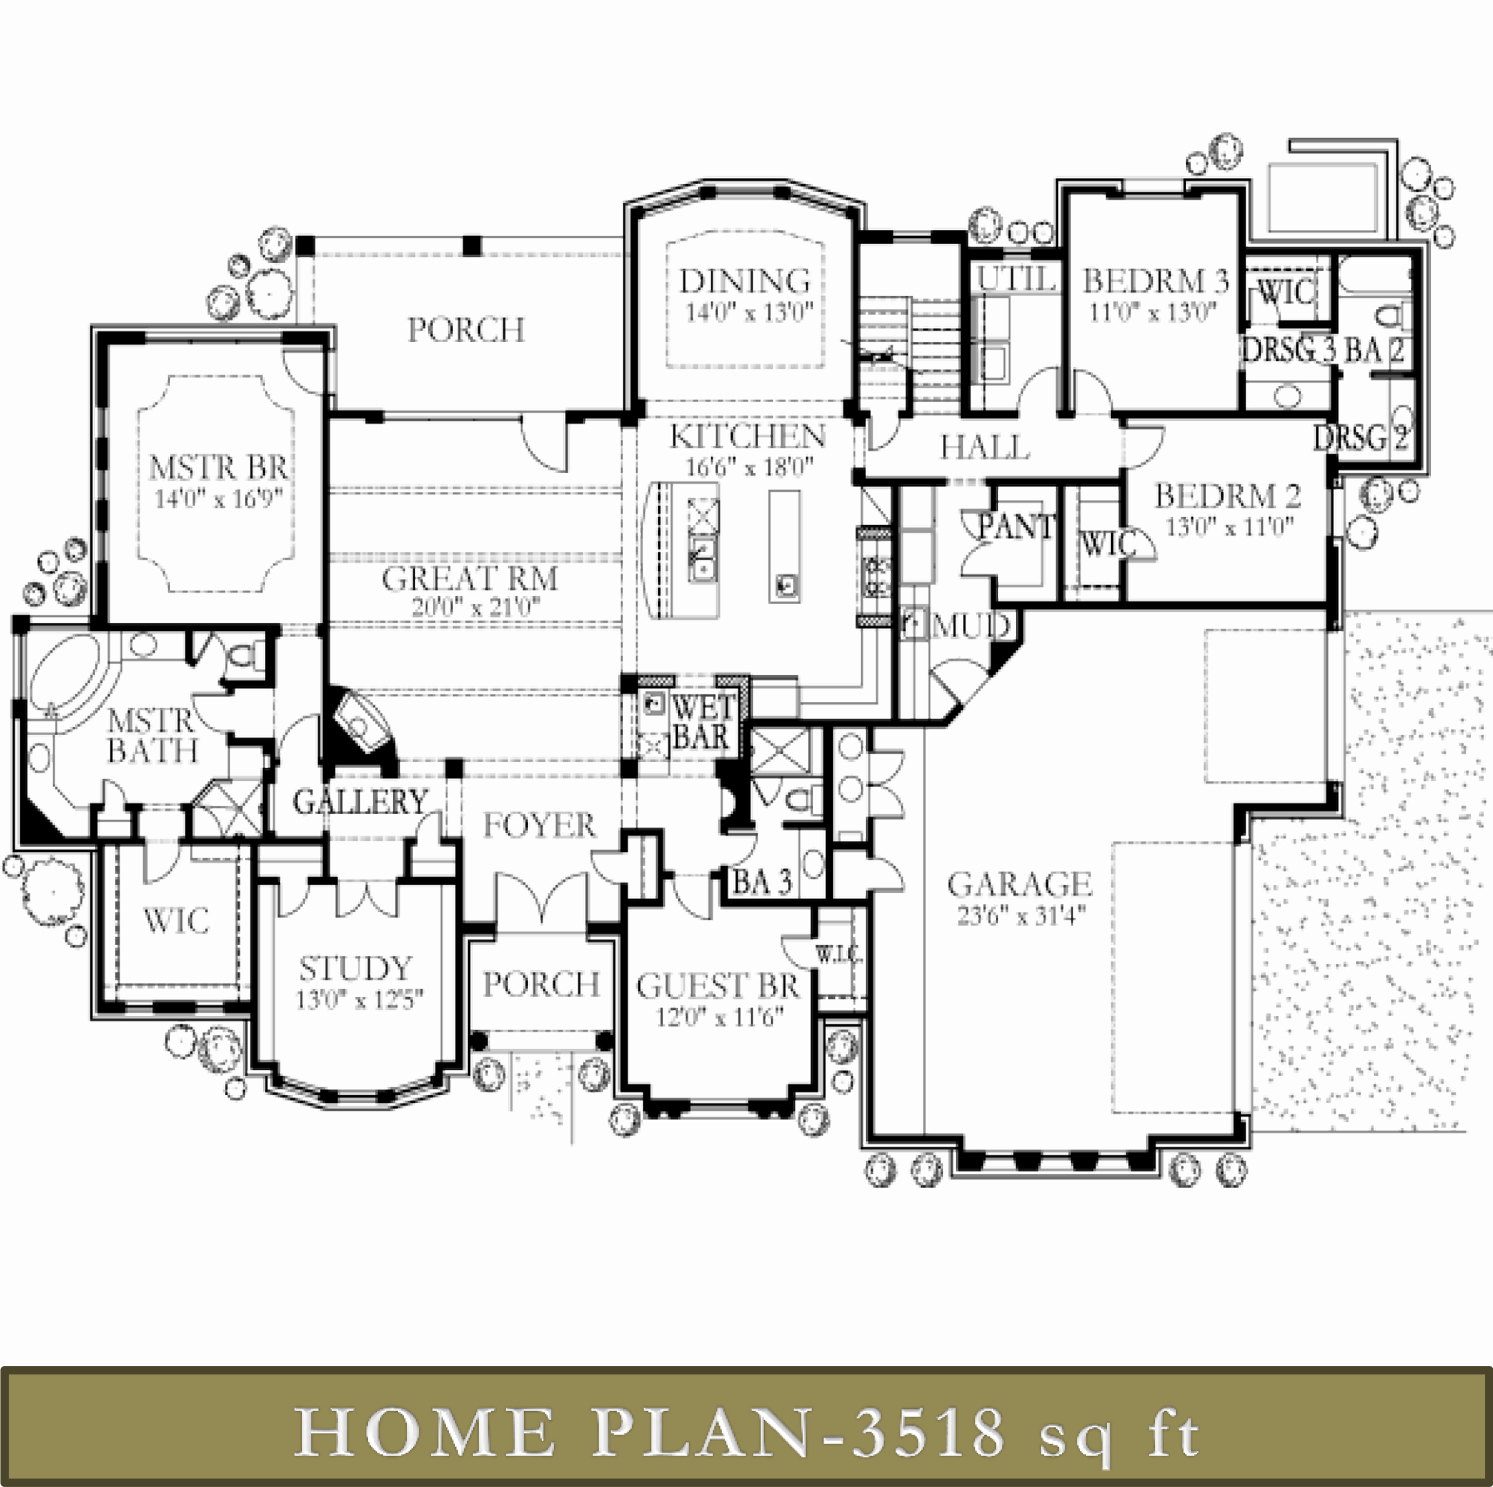 3500 4000 sq ft homes 3500 4000 sq ft homes custom home for House plans 3500 sq ft